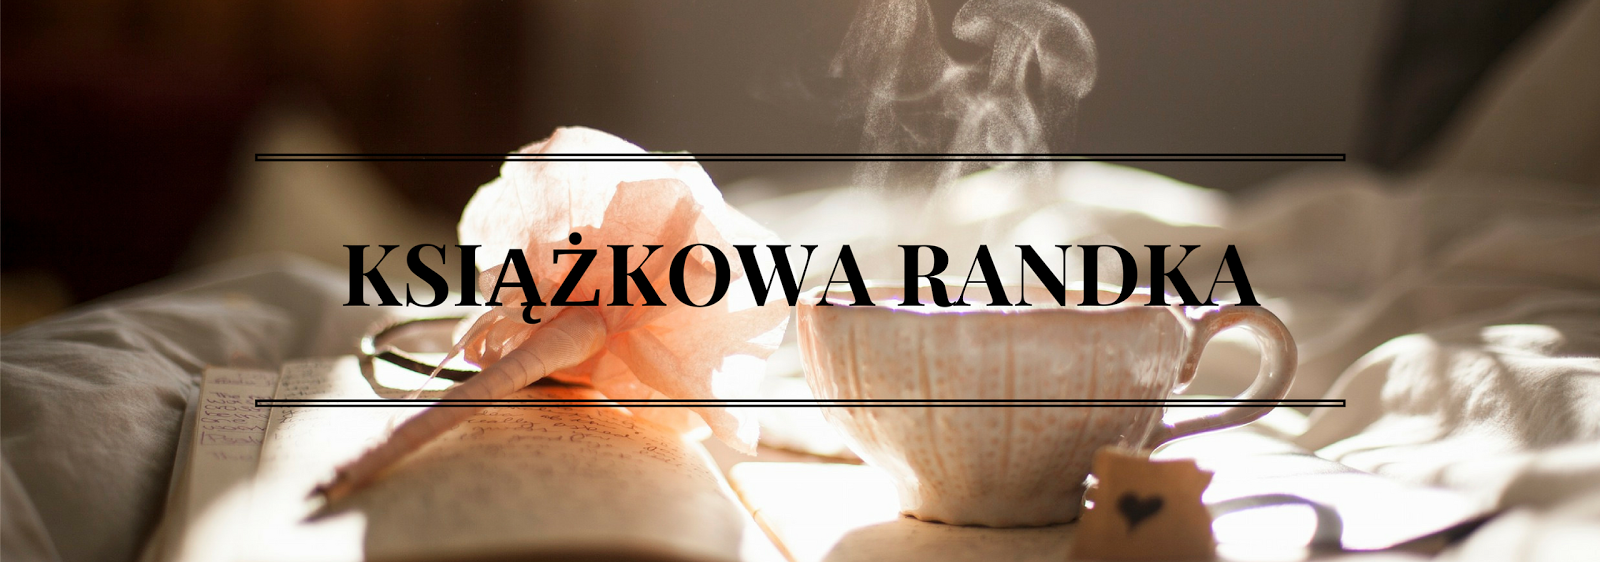 KSIĄŻKOWA RANDKA TAG BY KITTY AILLA | Book Tag